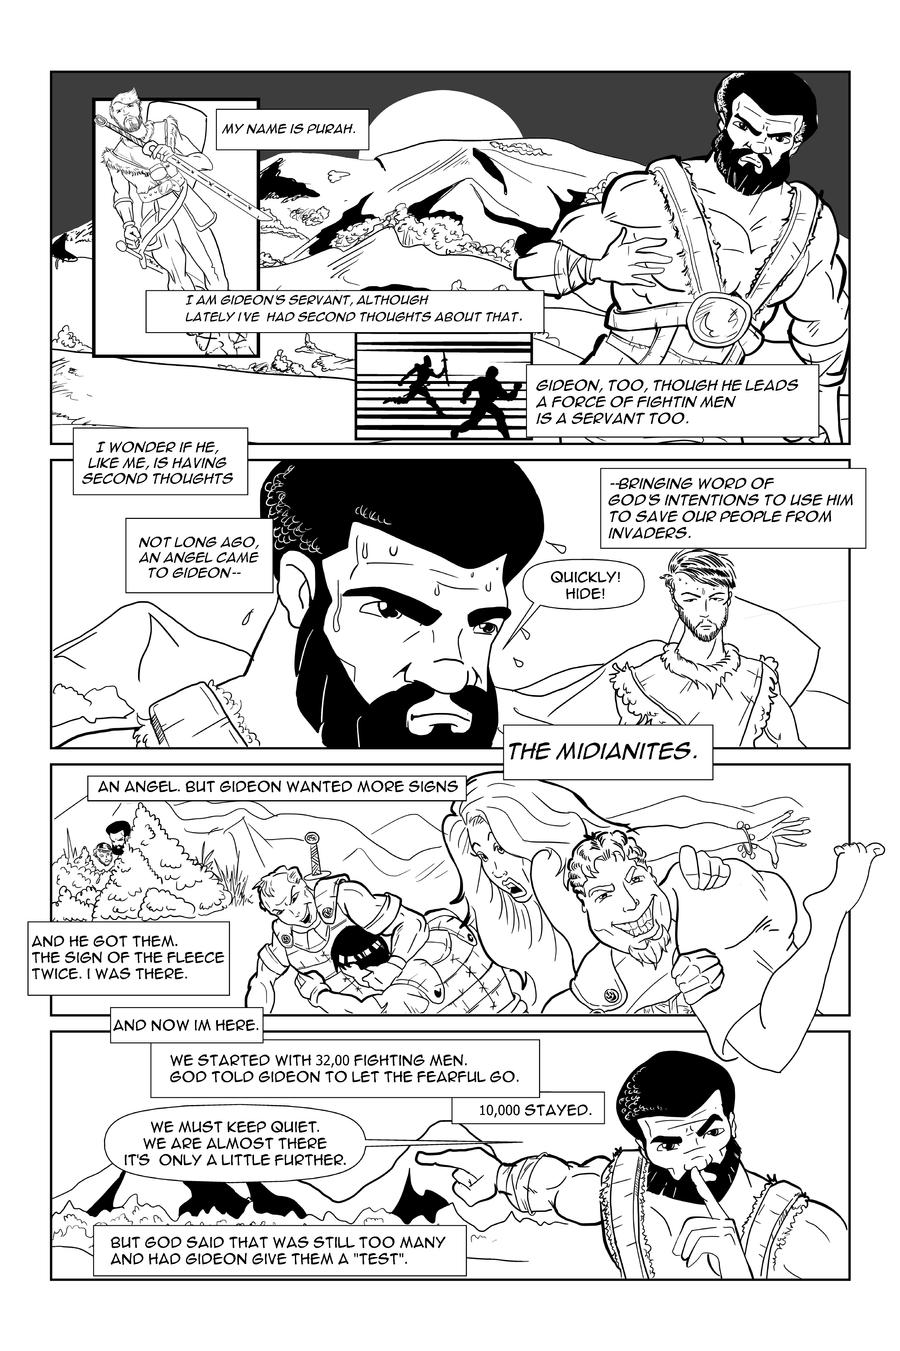 A Sword for Lord and for Gideon-page 1